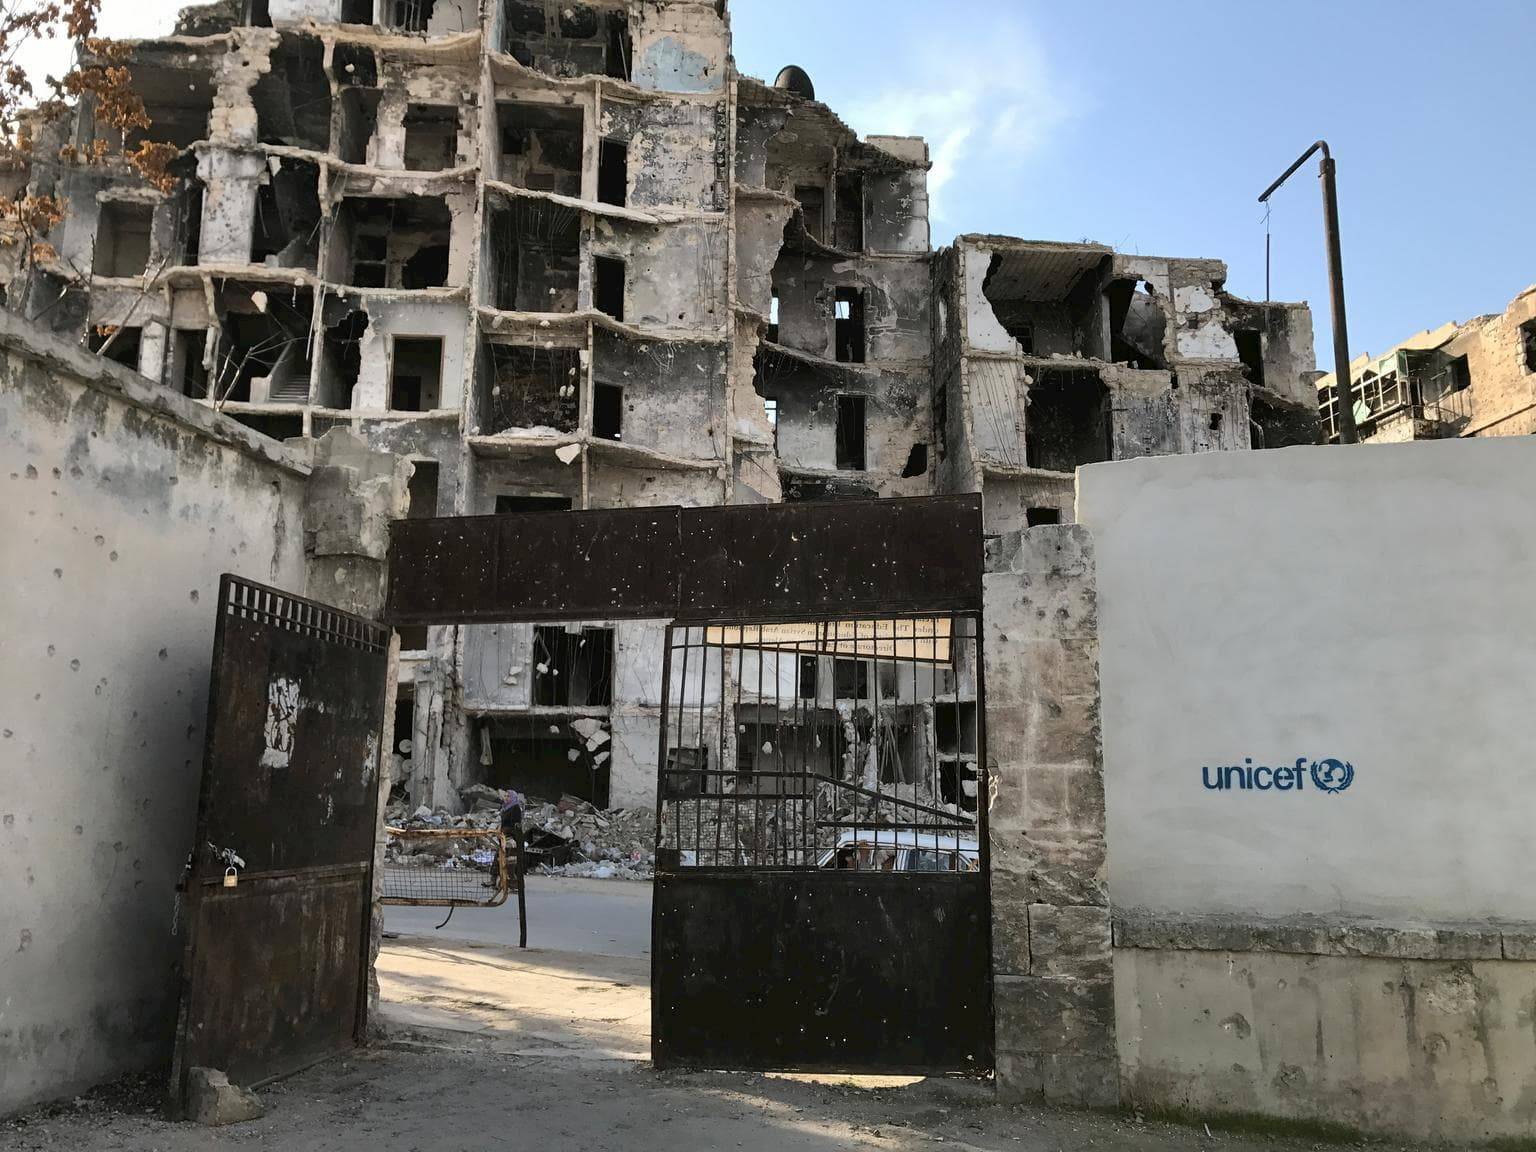 UNICEF's supports to Syrian refugee children aids